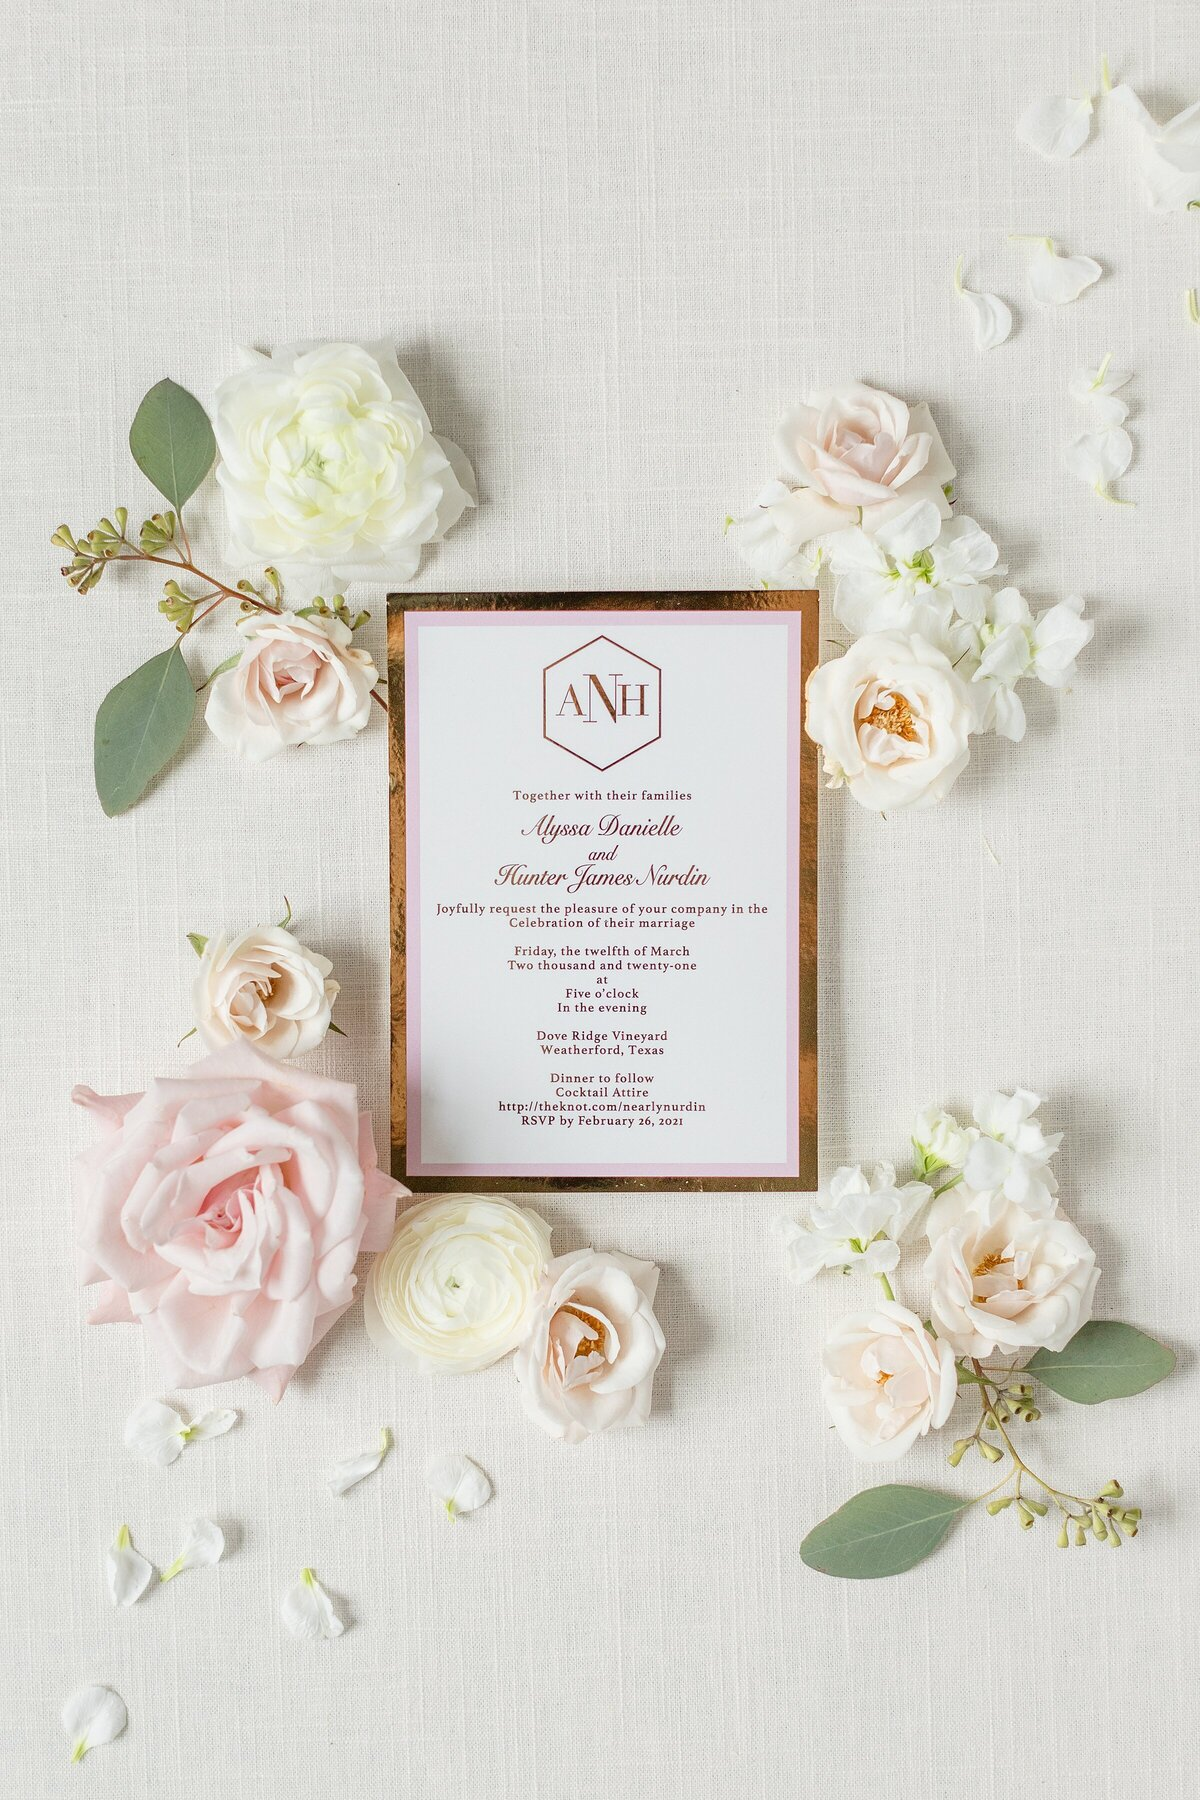 Dove Ridge Vineyard invitations